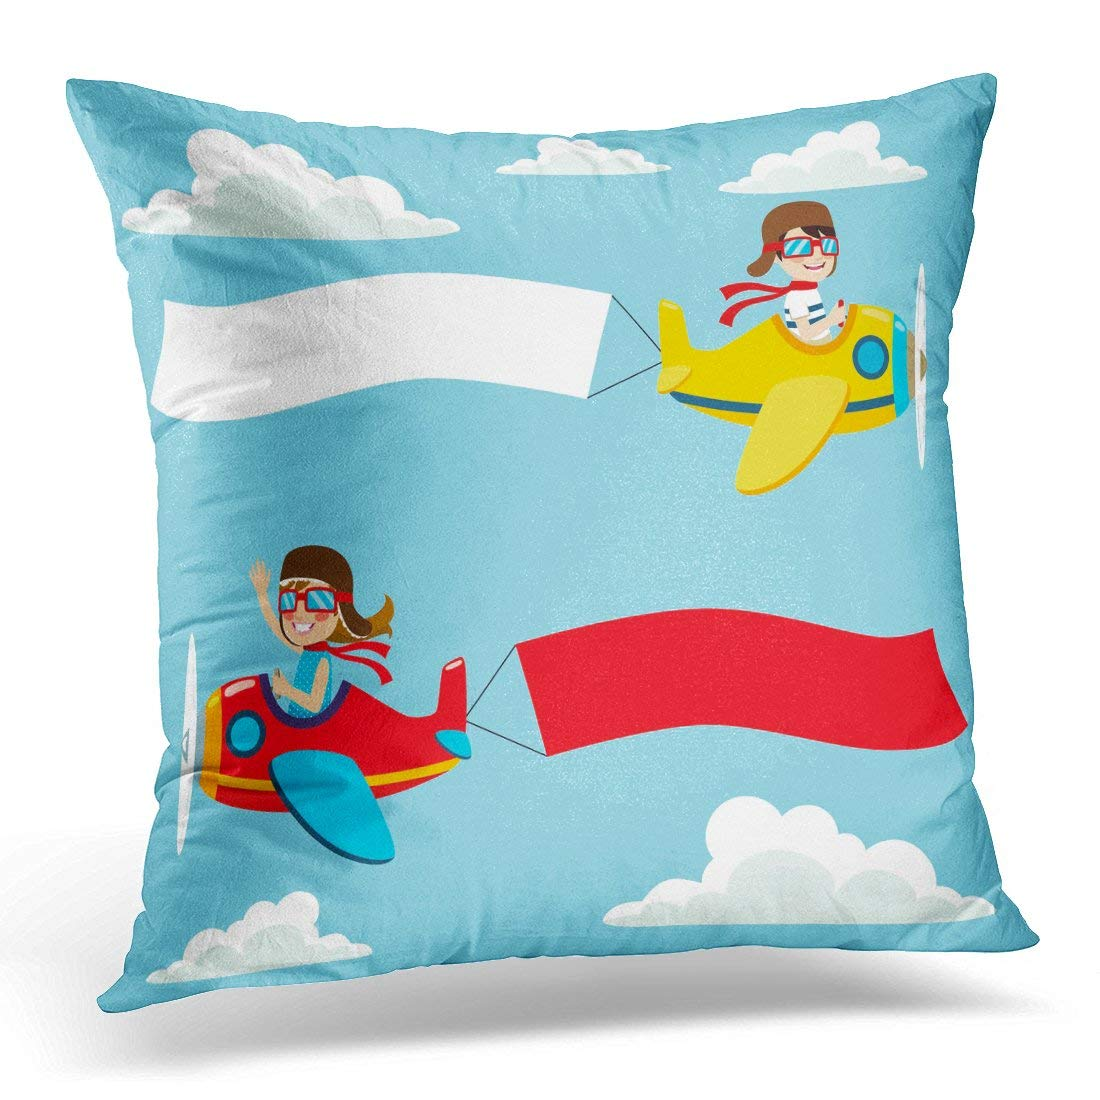 CMFUN Boy Little Pilot Kids on Airplane with White and Red Blank Fun Pillow Case Pillow Cover 20x20 inch